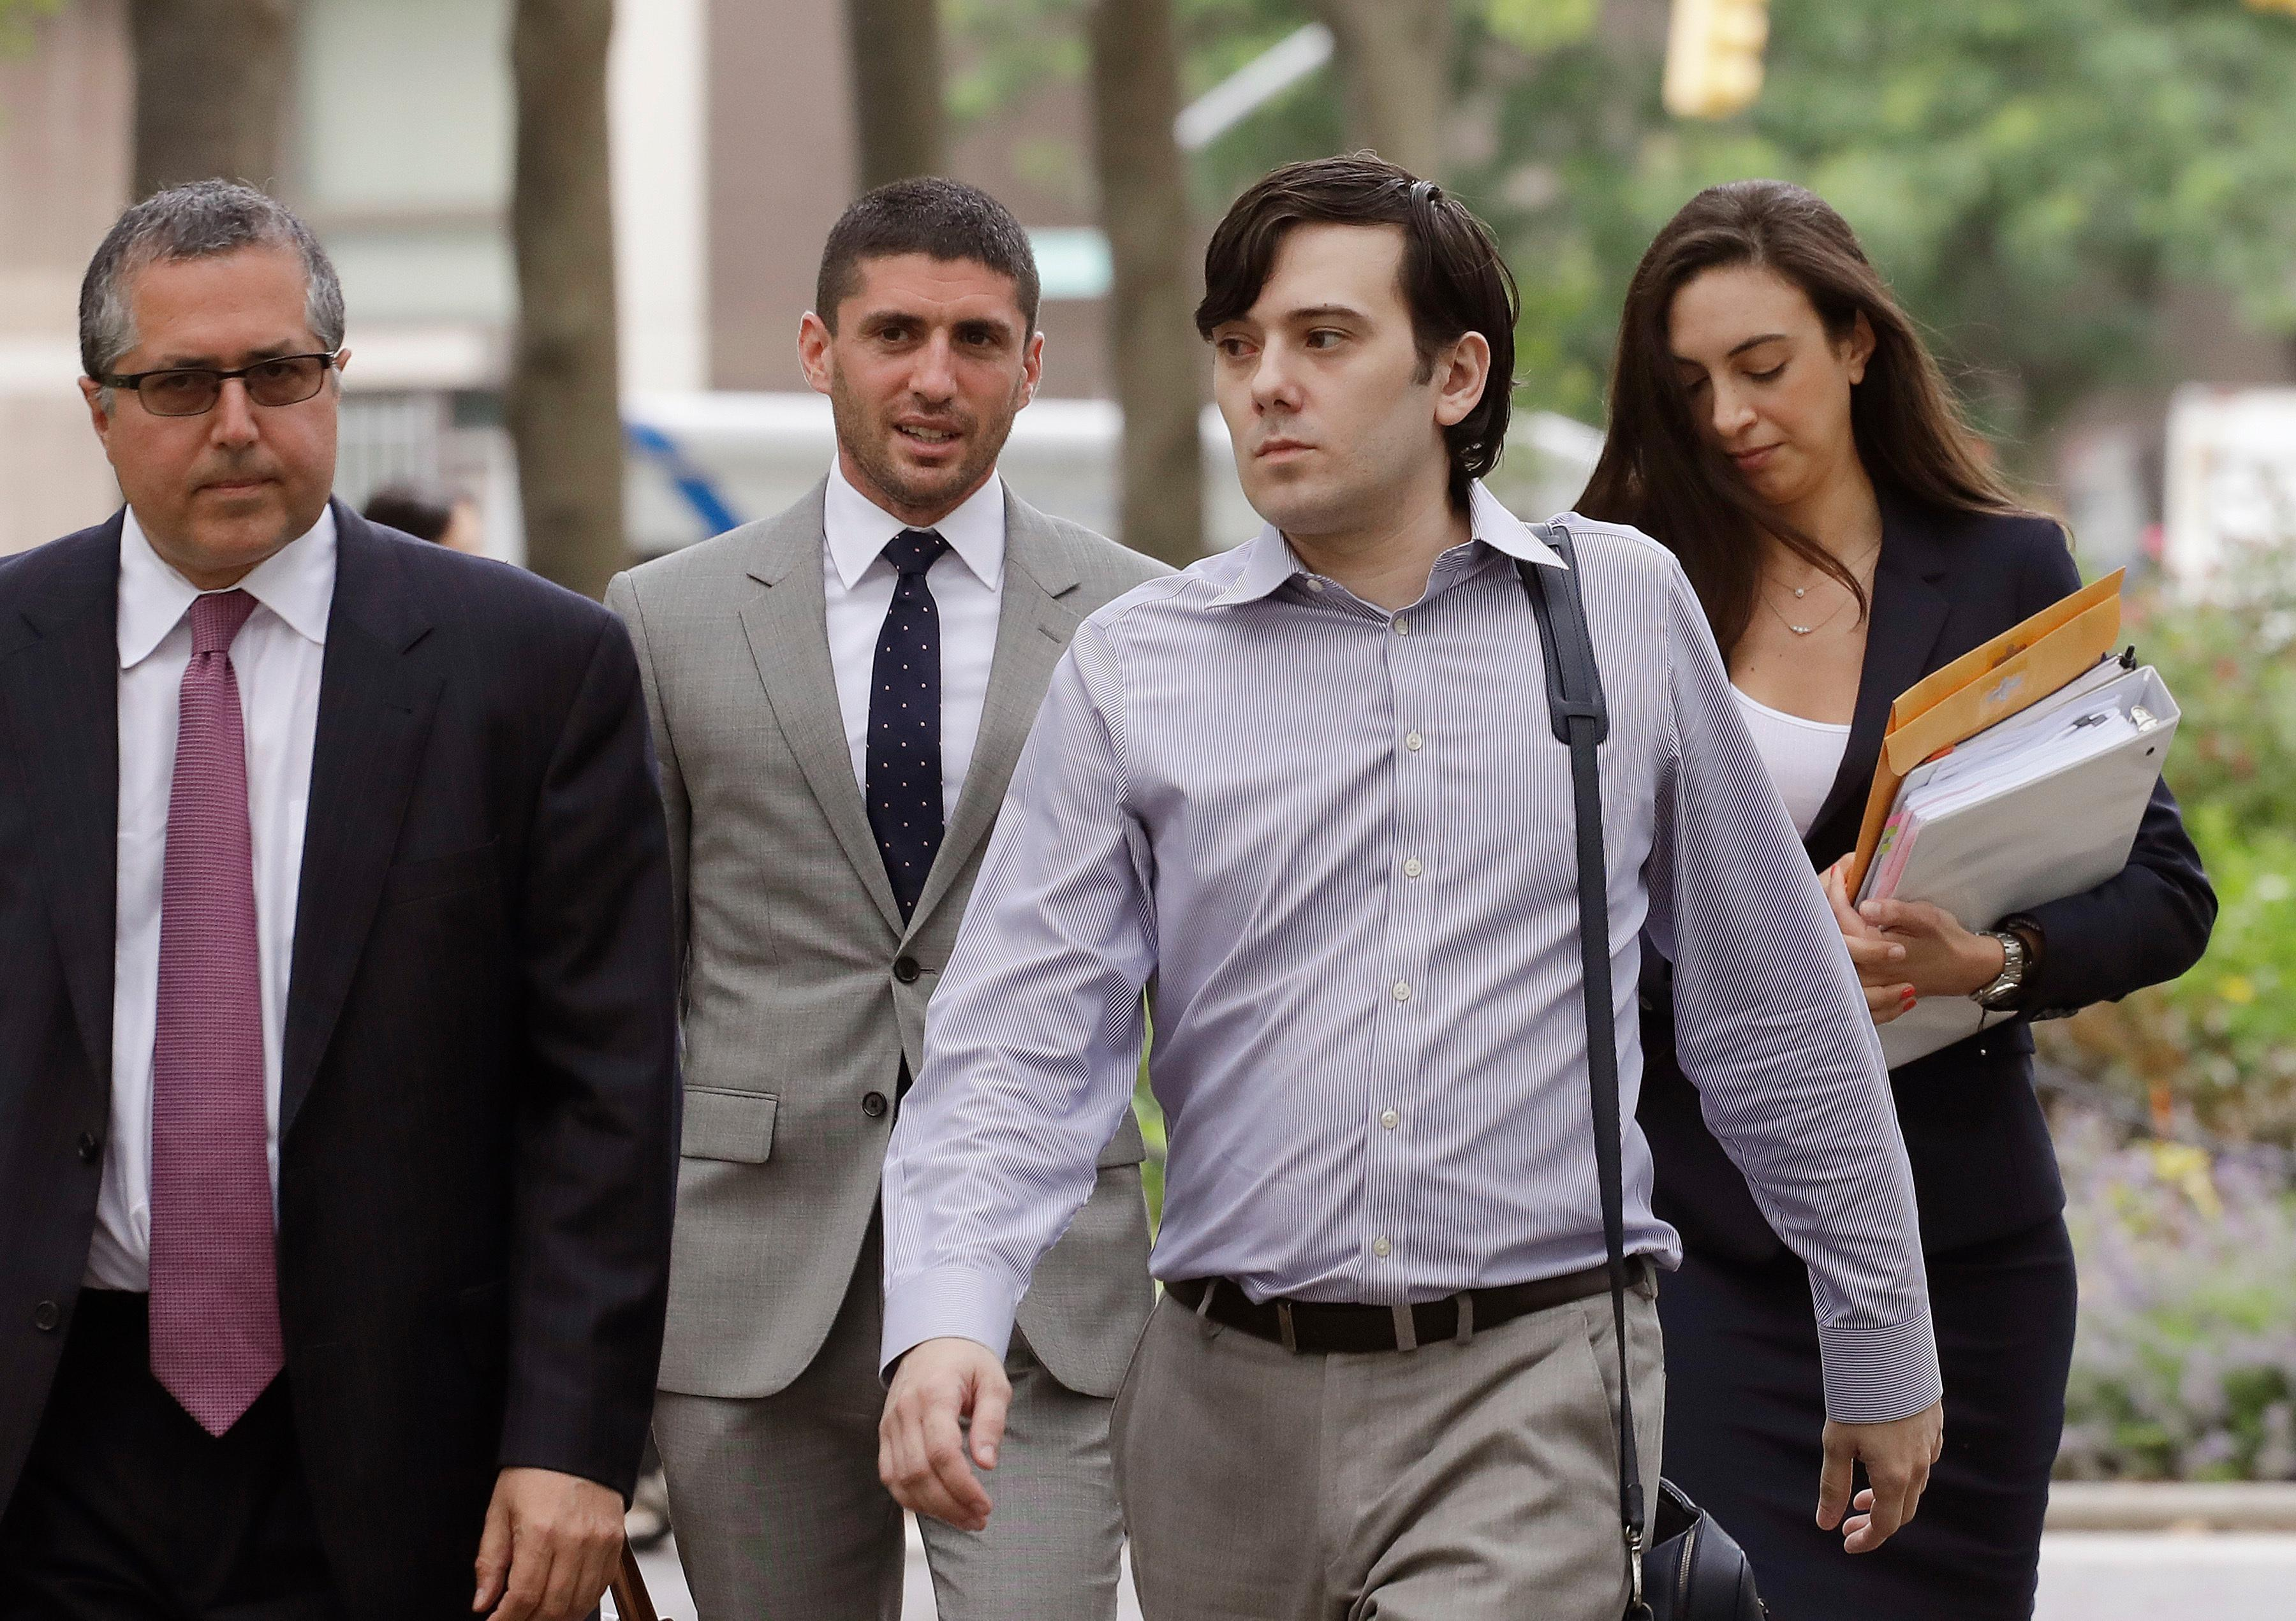 FILE - In this Monday, June 19, 2017, file photo, former Turing Pharmaceuticals CEO Martin Shkreli, second from right, arrives at Brooklyn federal court with members of his legal team, in New York, for a pretrial conference in his securities fraud trial. Shkreli's trial begins Monday, June 26, 2017. (AP Photo/Mark Lennihan, File)